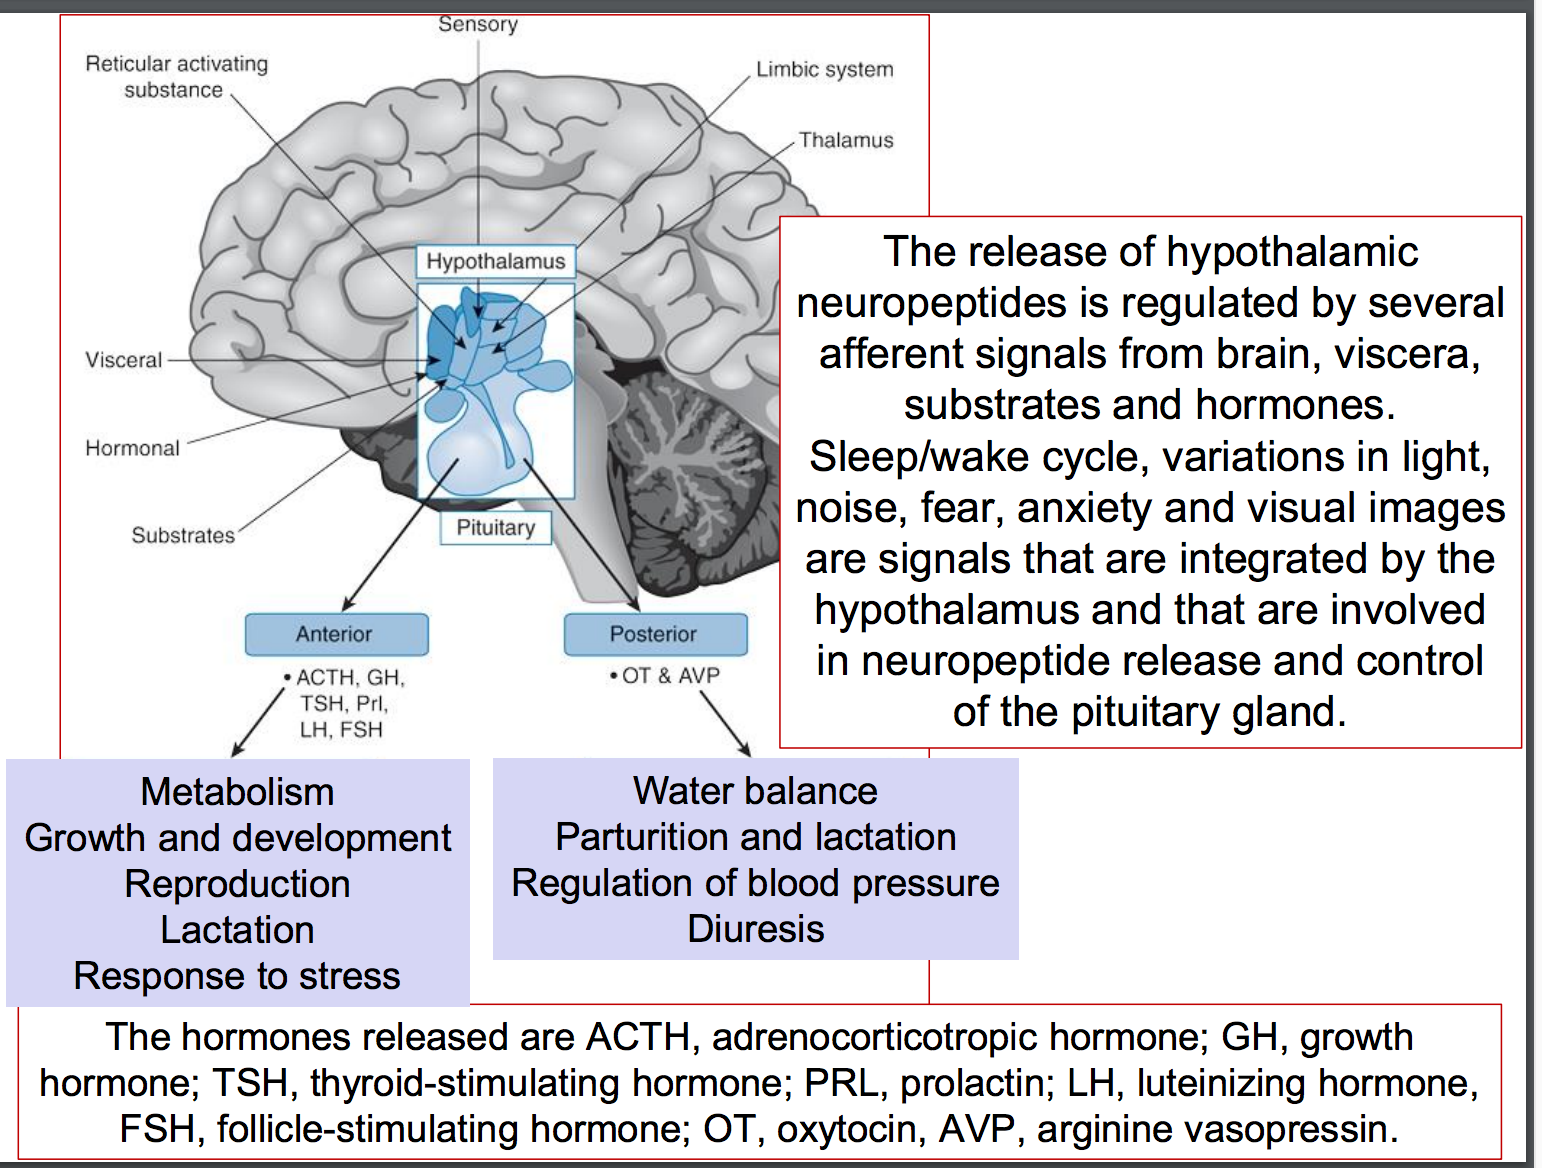 Physiology L27 (Hypothalamus and pituitary) Flashcards | Memorang